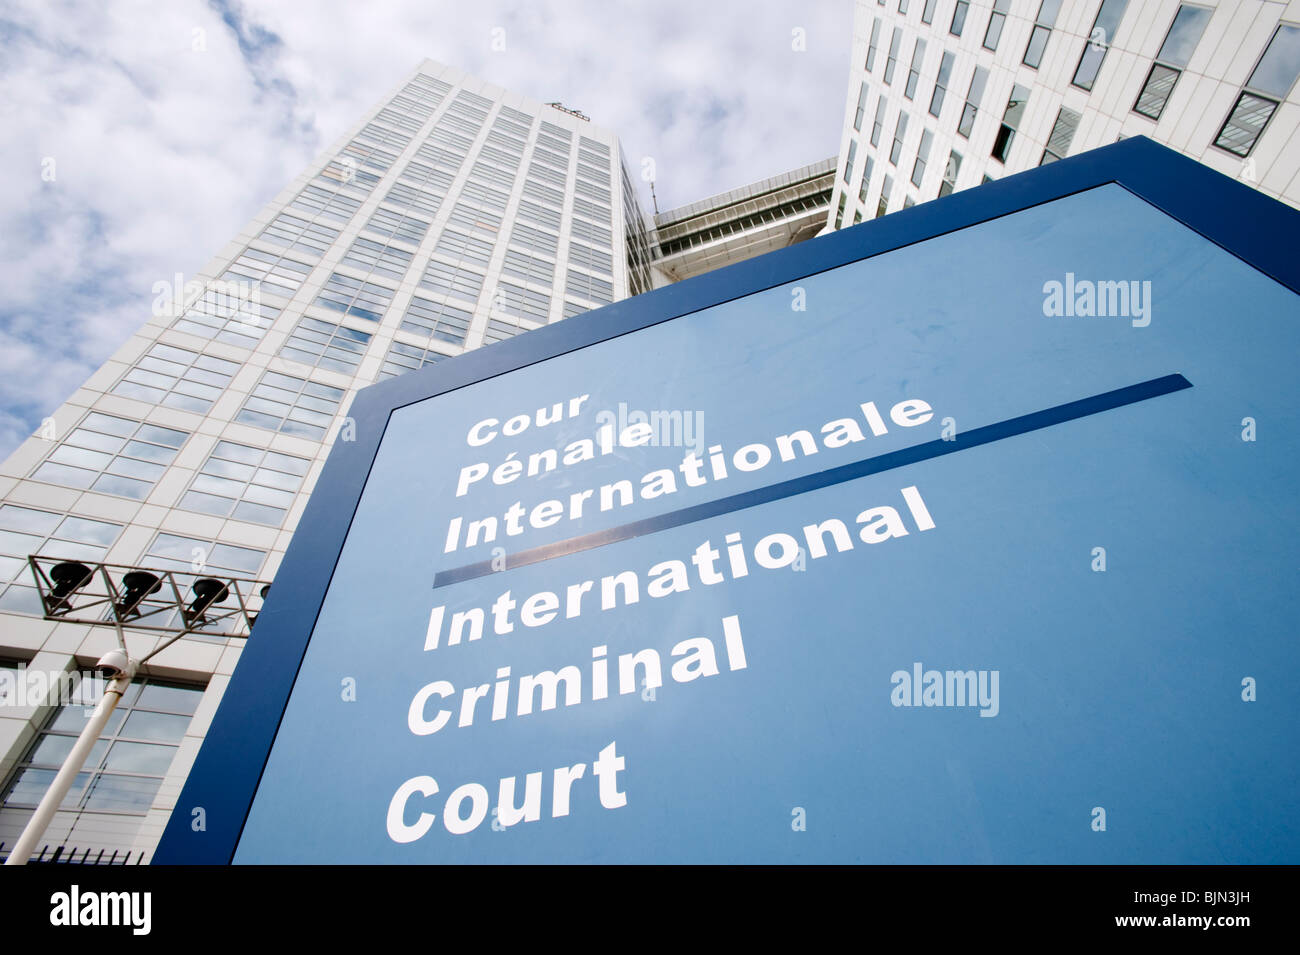 The Hague; Exterior of International Criminal Court or ICC in the Netherlands - Stock Image